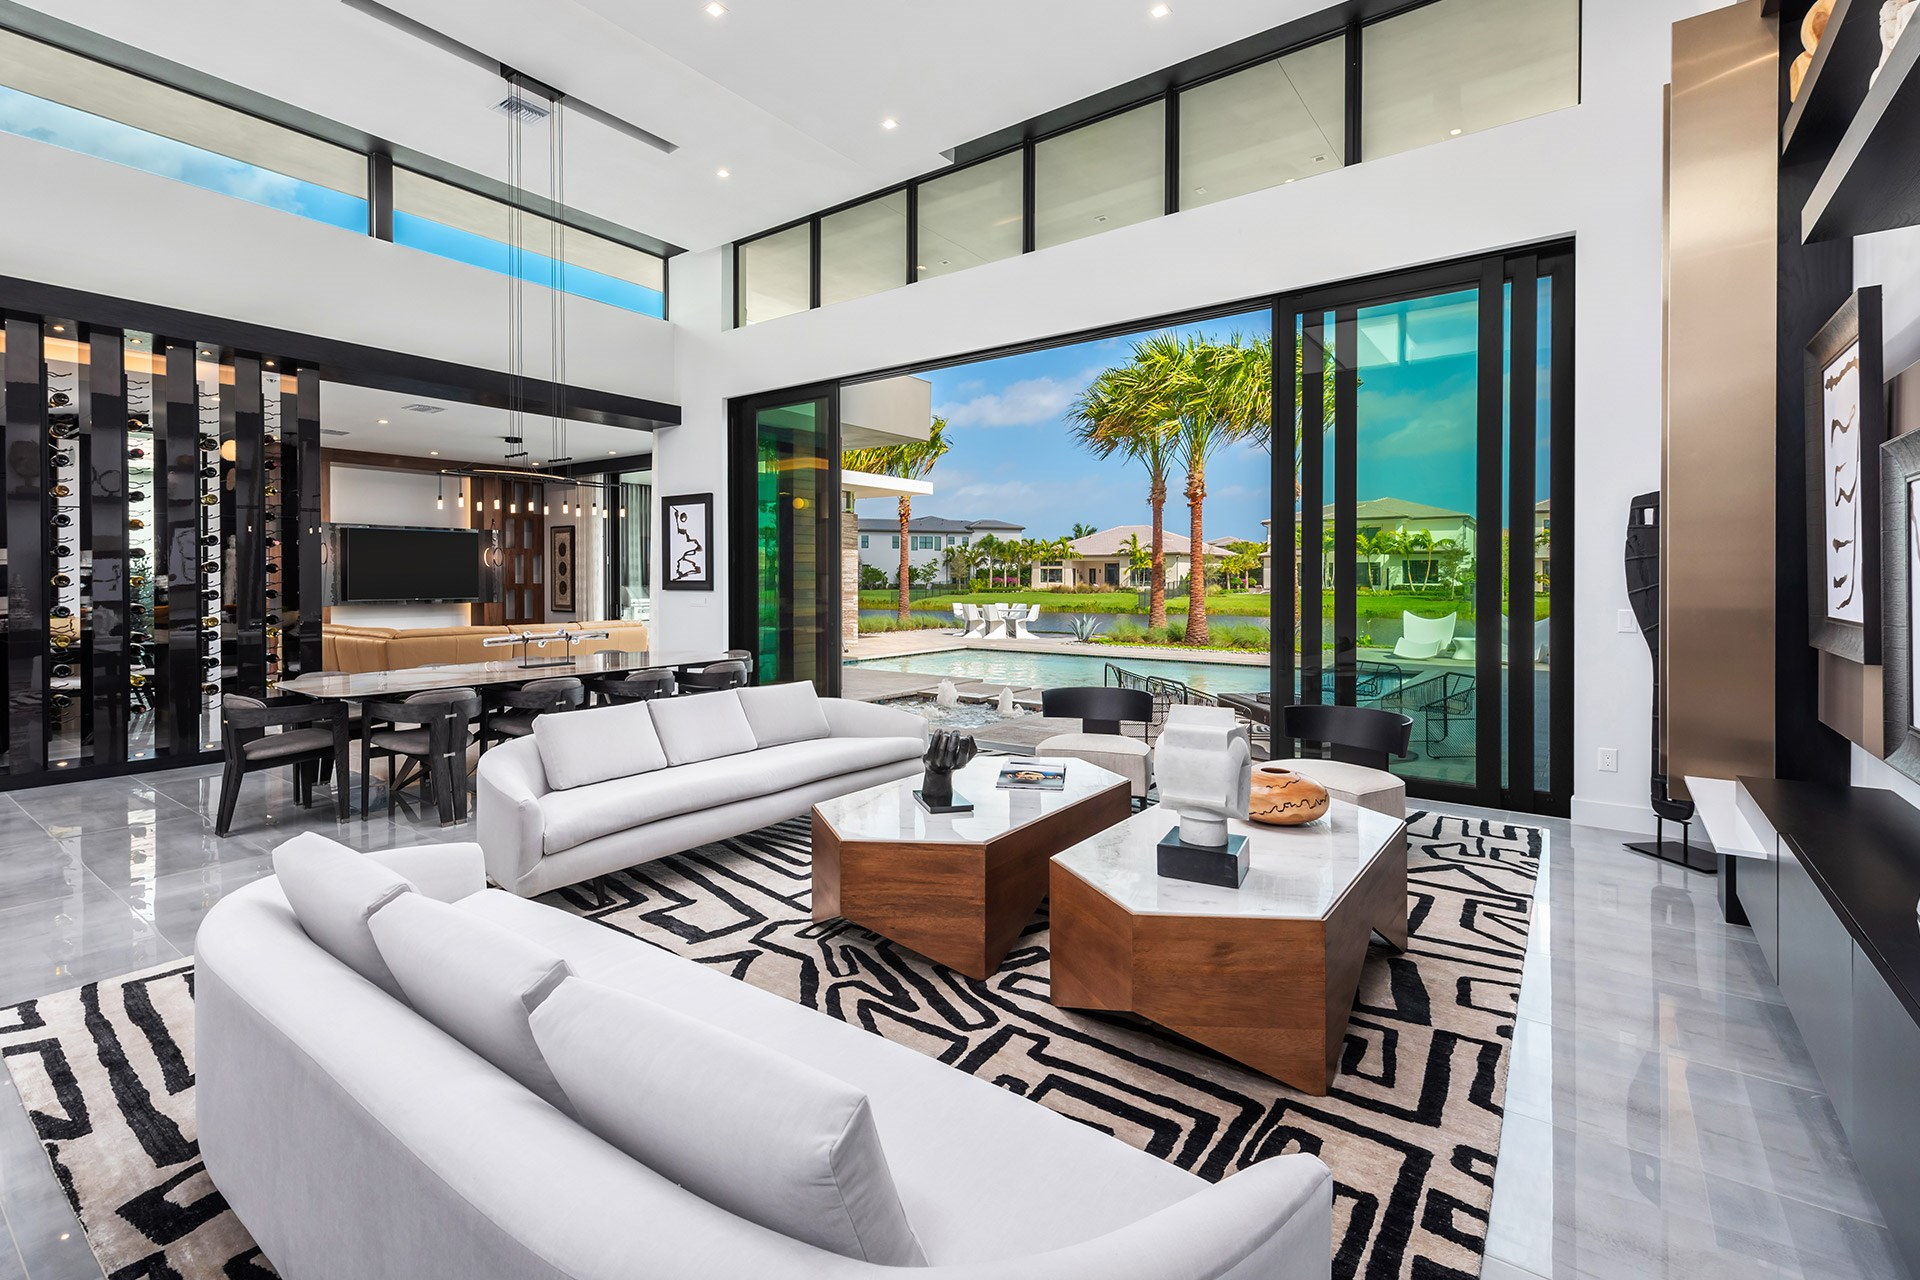 OPEN-CONCEPT LIVING